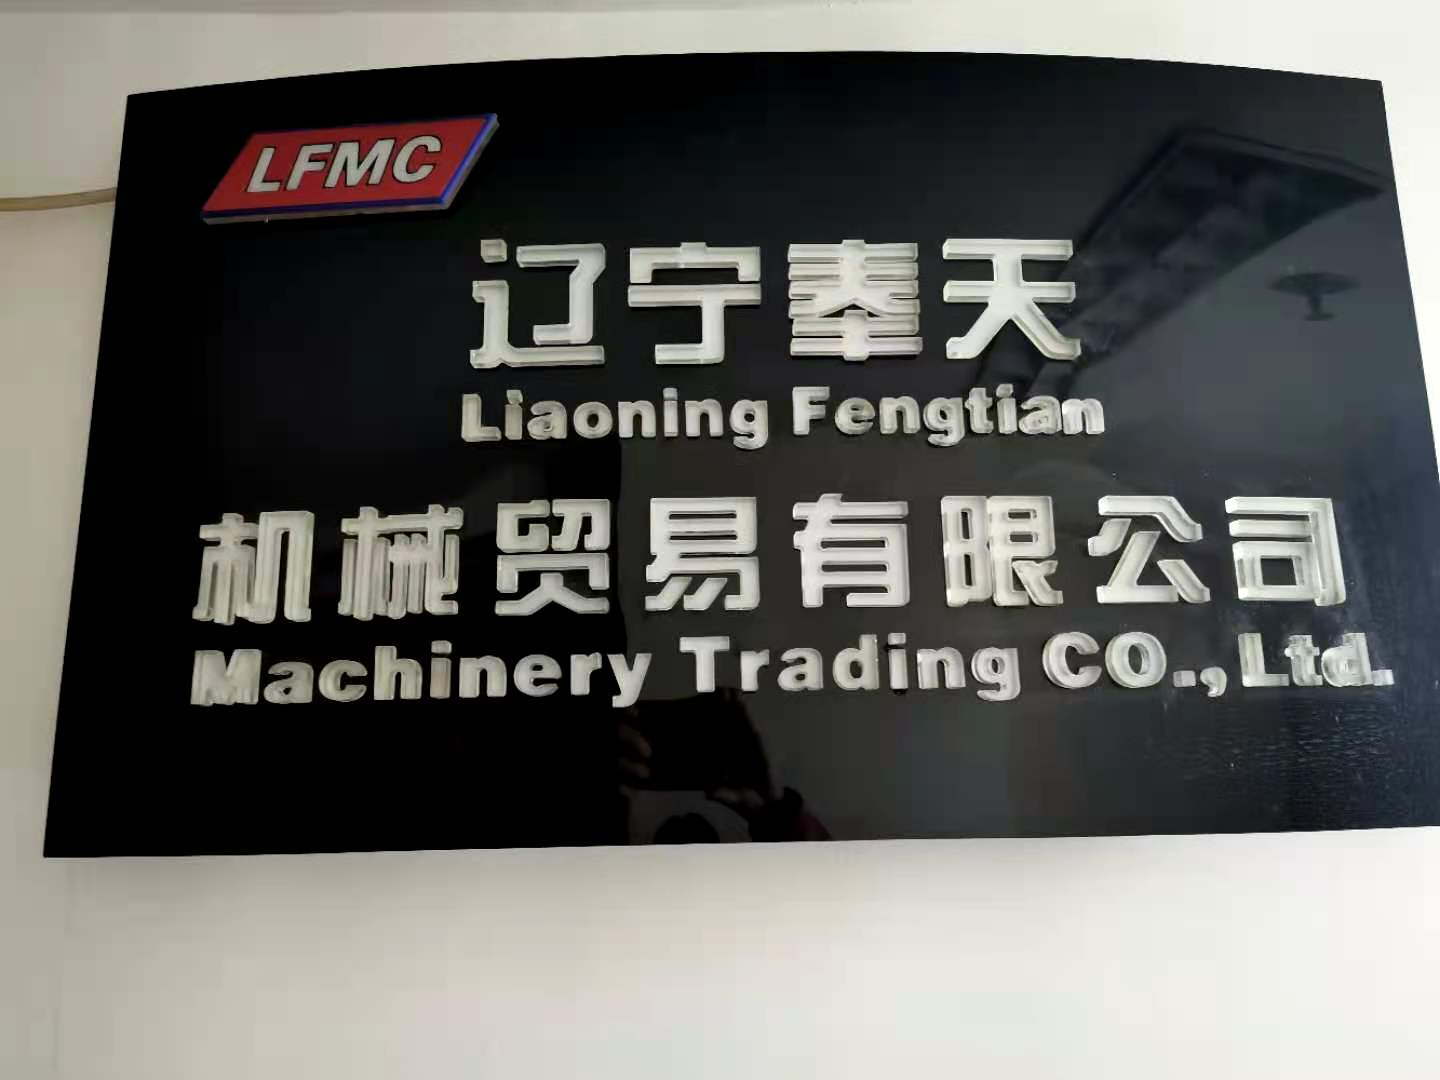 LIAONING FENGTIAN MACHINERY TRADING CO., LTD.